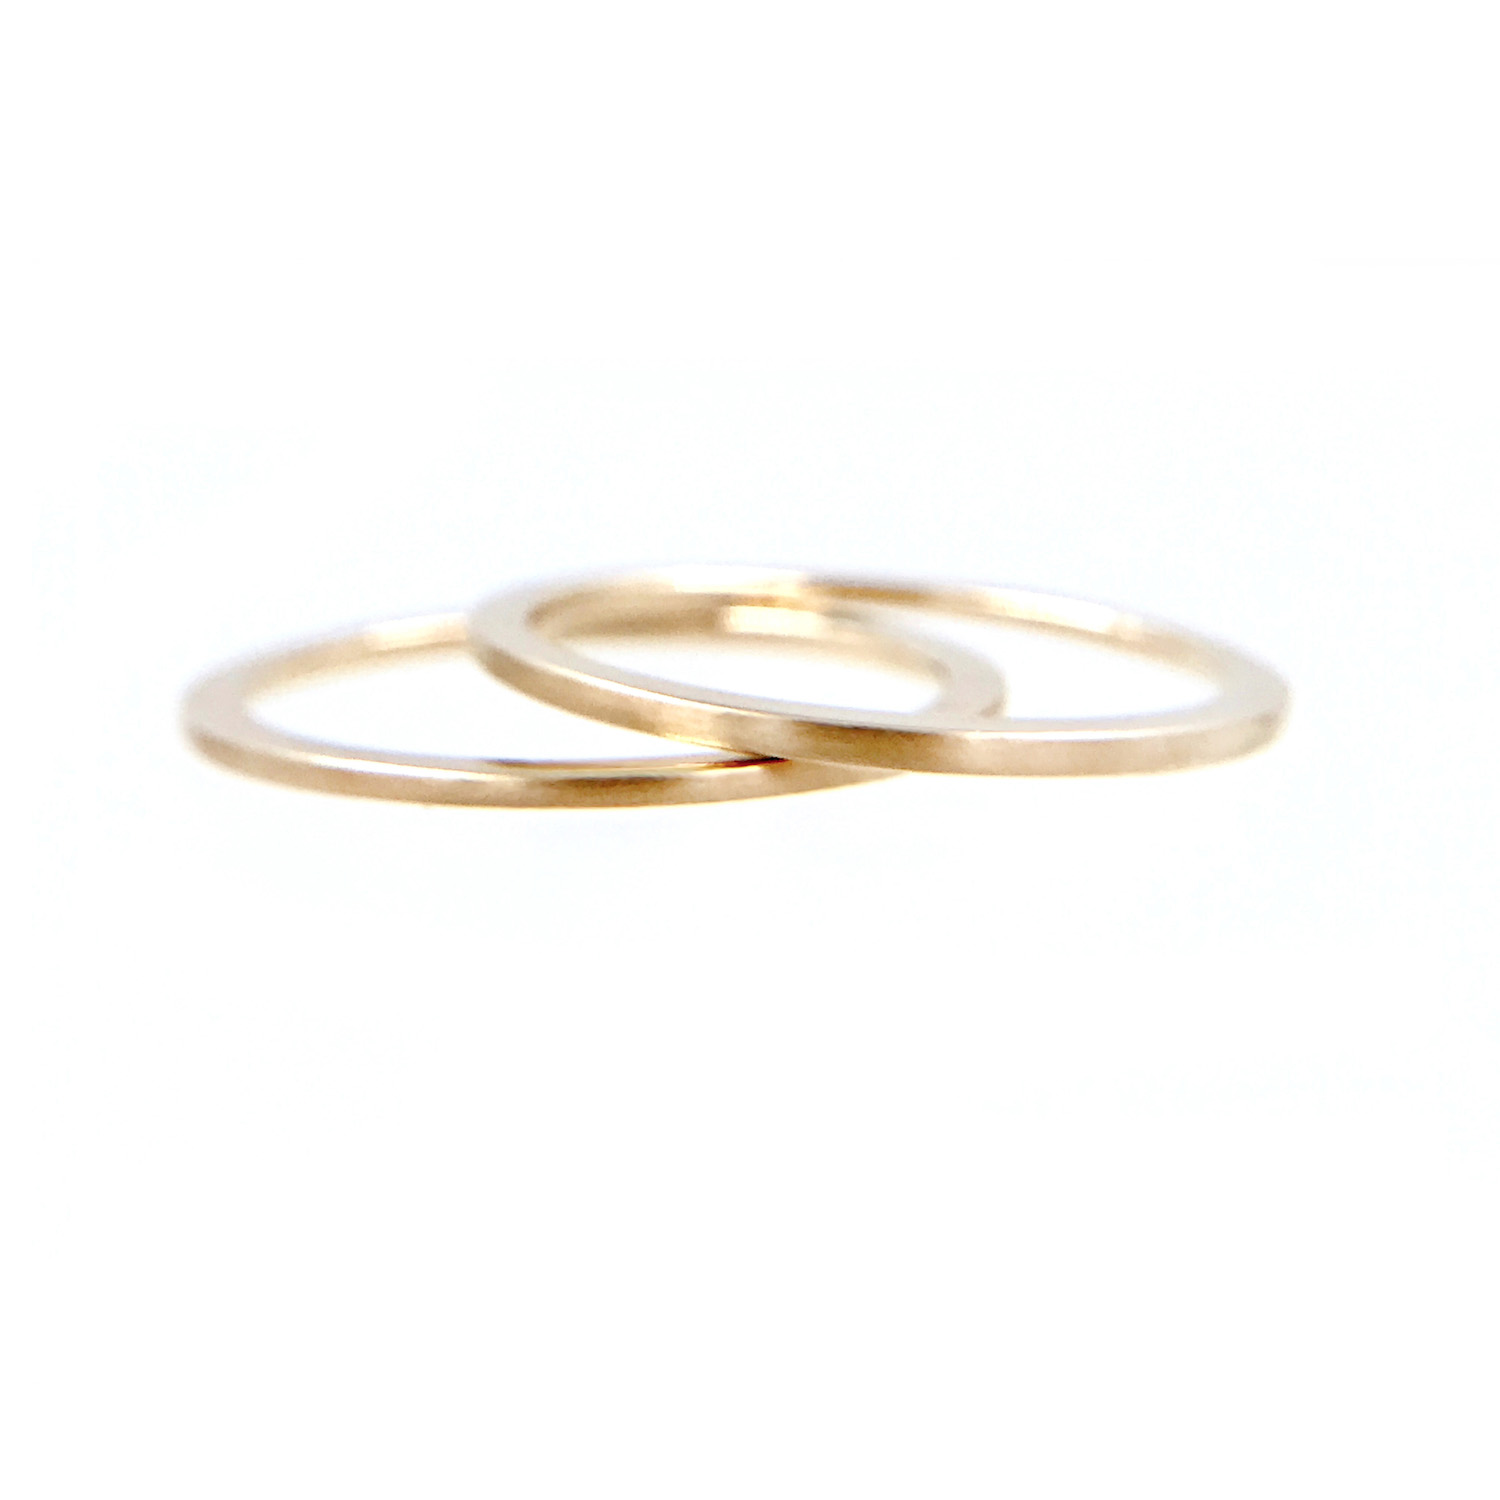 42-Slim-Chic-1mm-Satin-Gold-Band-Ring-Guard-Spacer-14K_7758